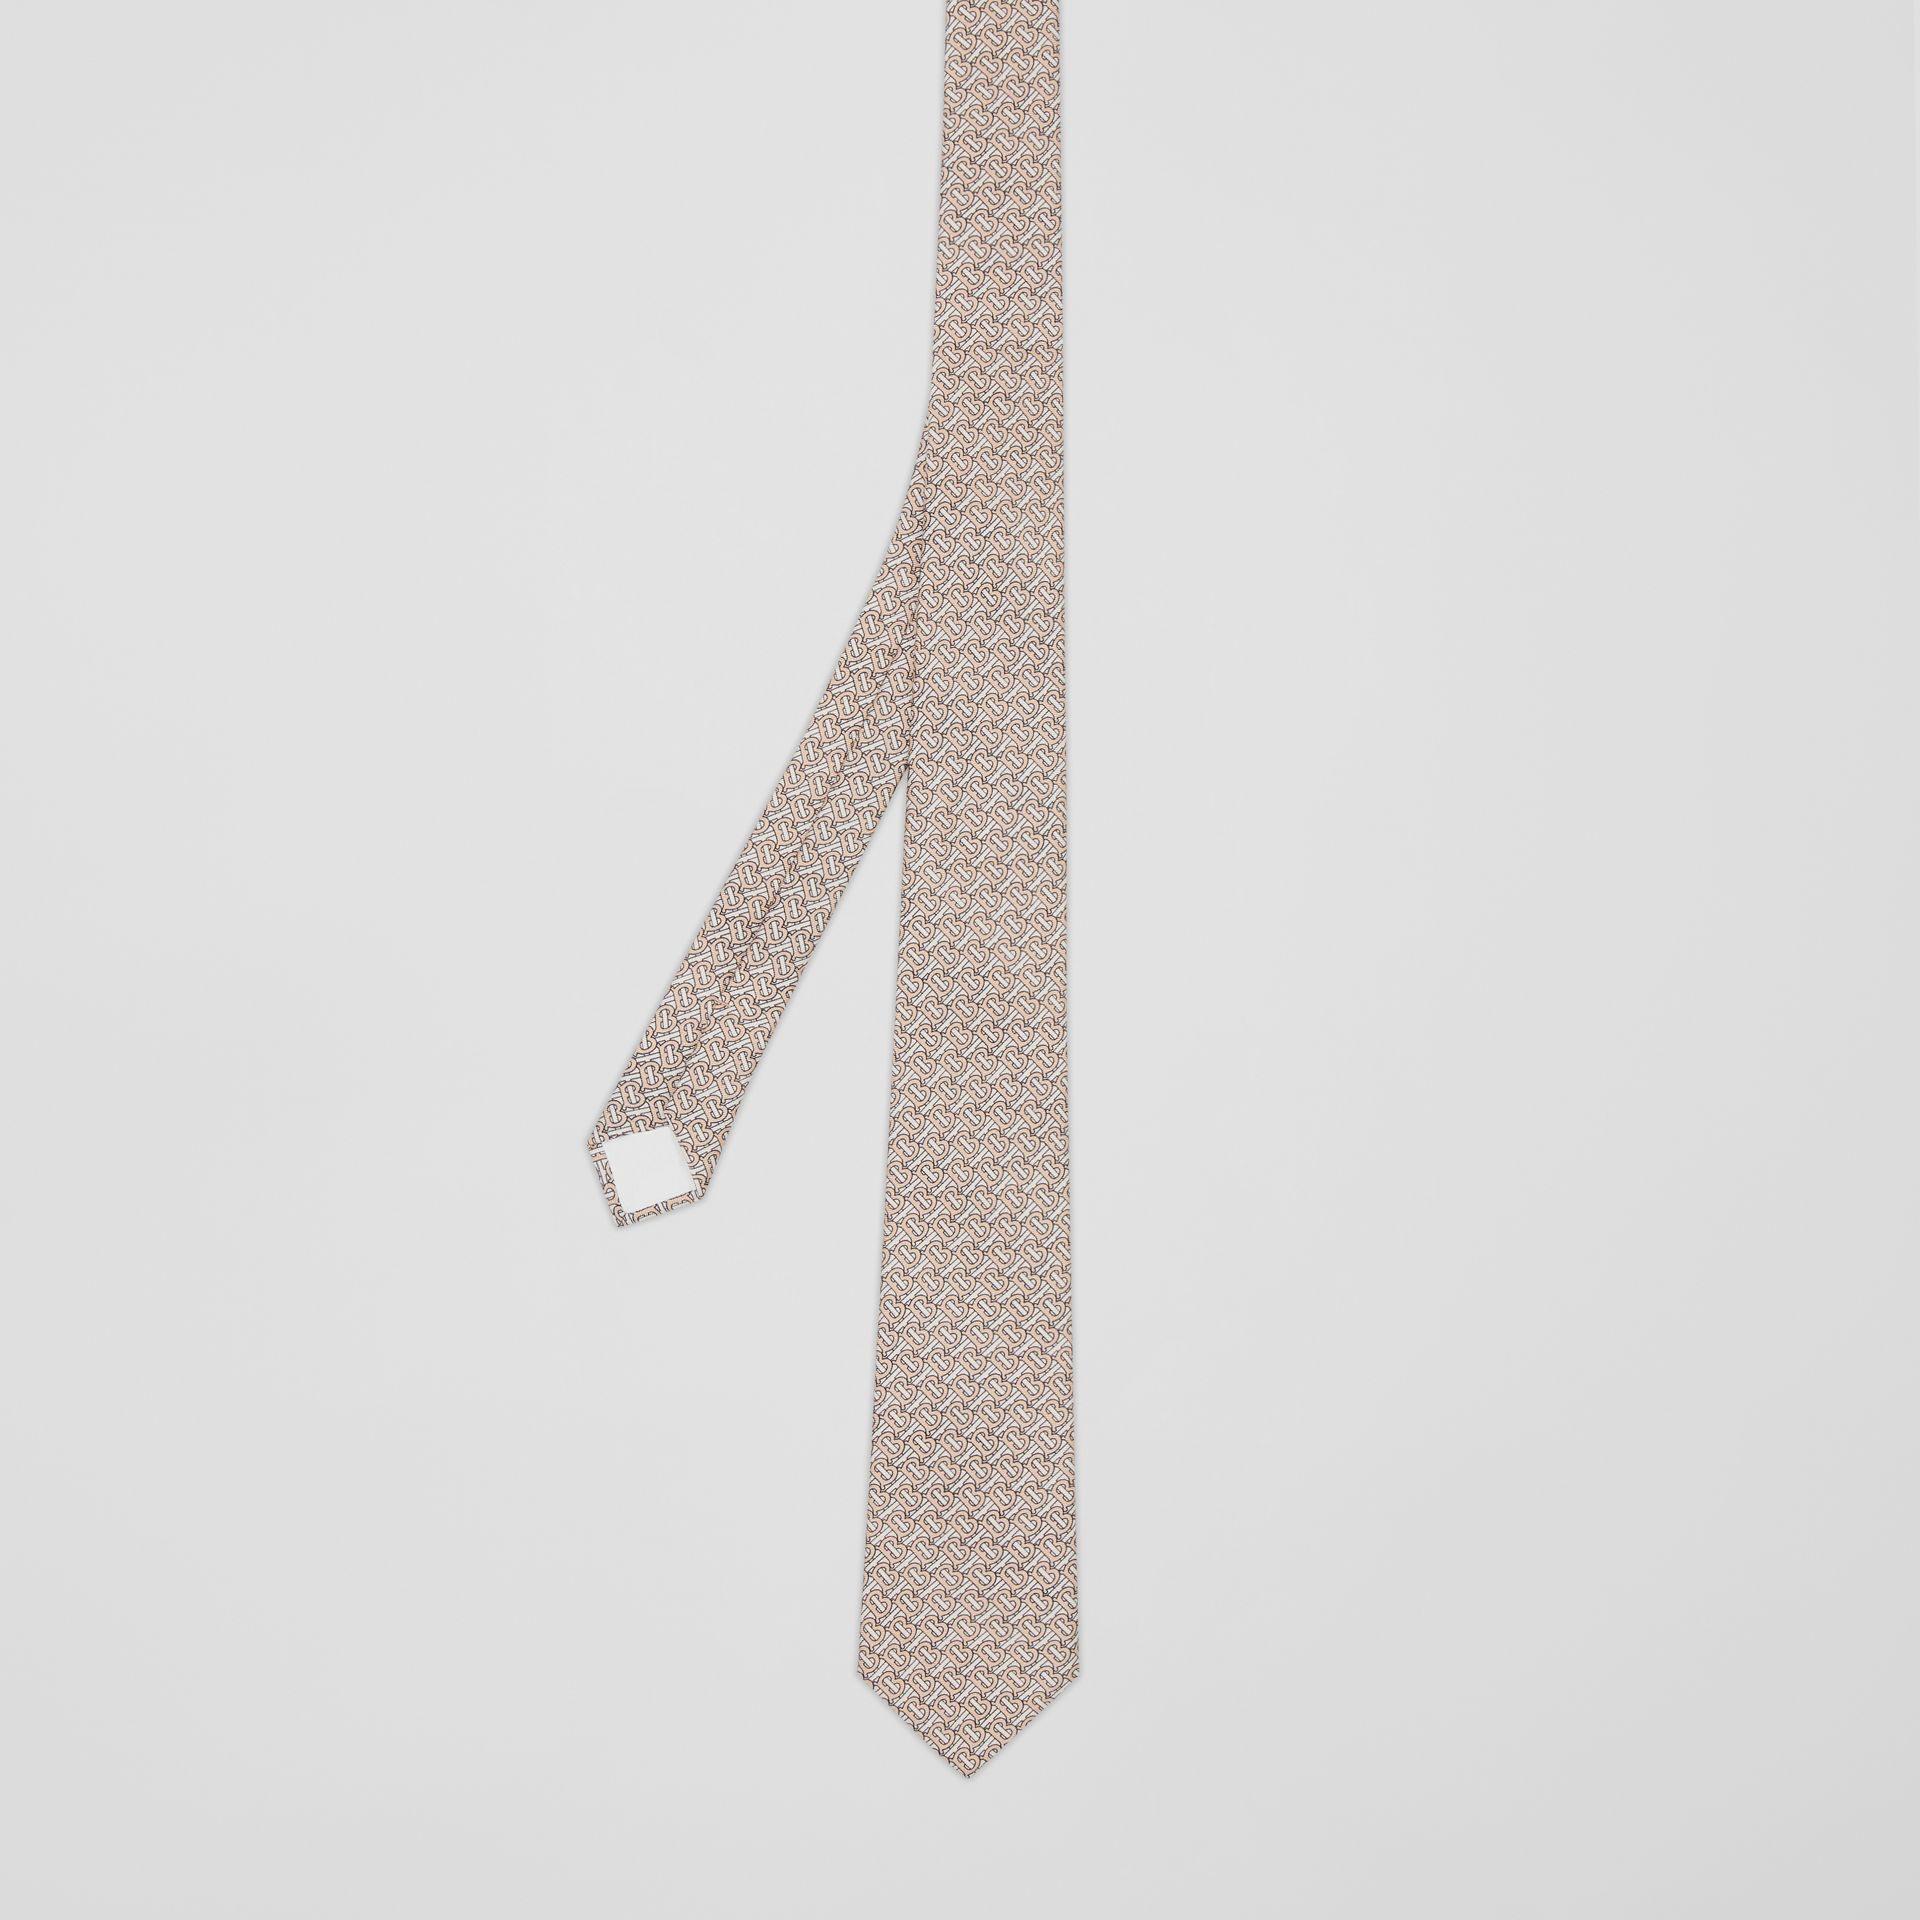 Classic Cut Monogram Silk Jacquard Tie in Blush Pink - Men | Burberry - gallery image 4